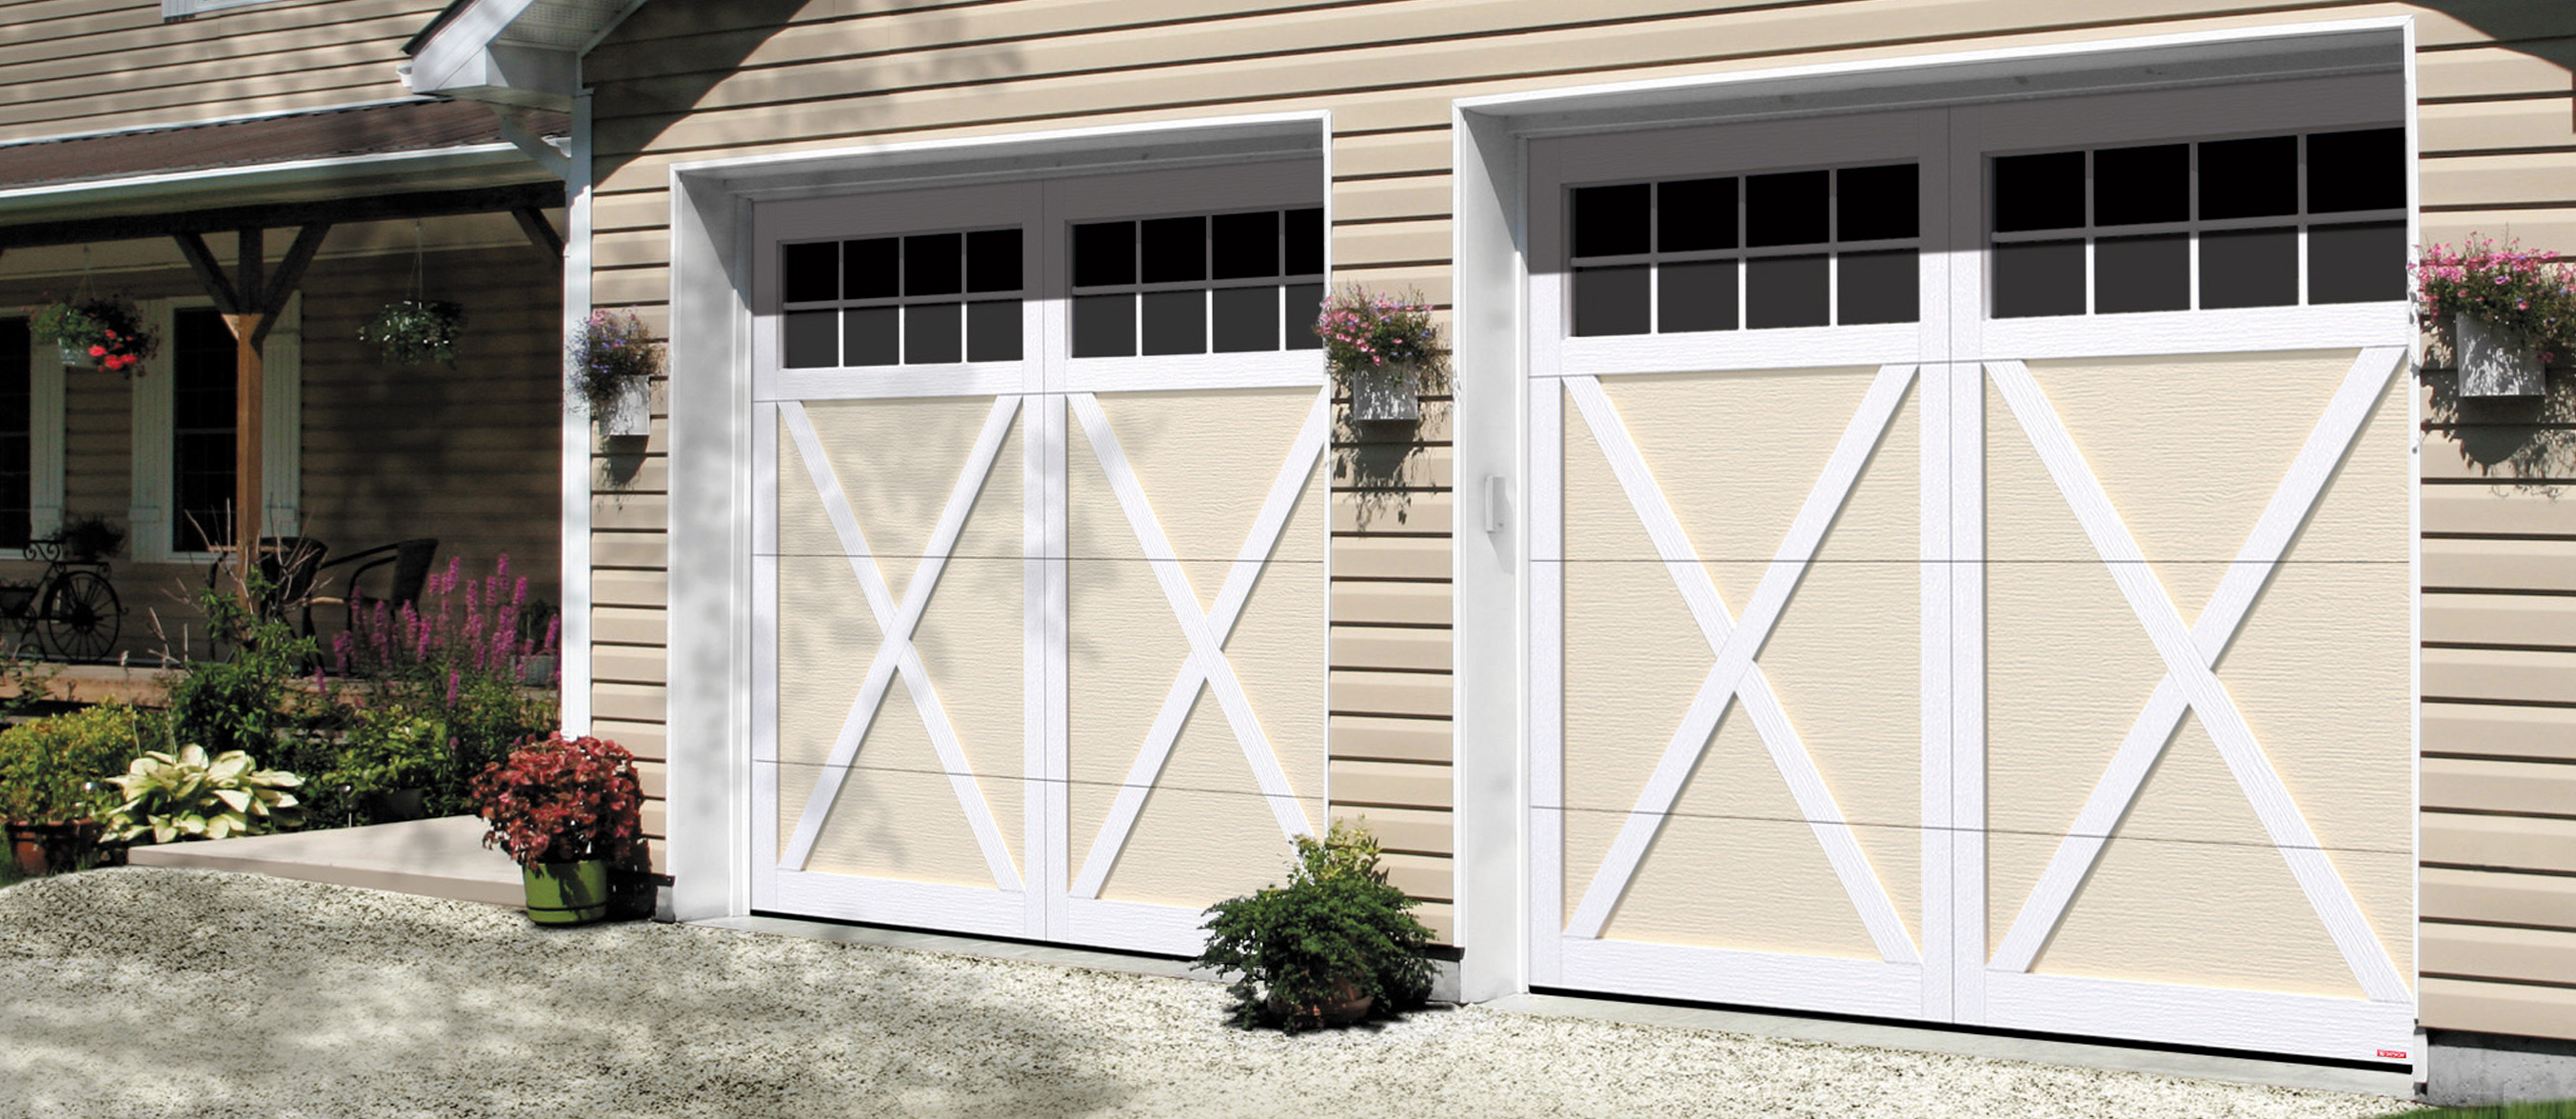 wooden door large repair services opener size service trim carriage full houston style chamberlain garage of doors